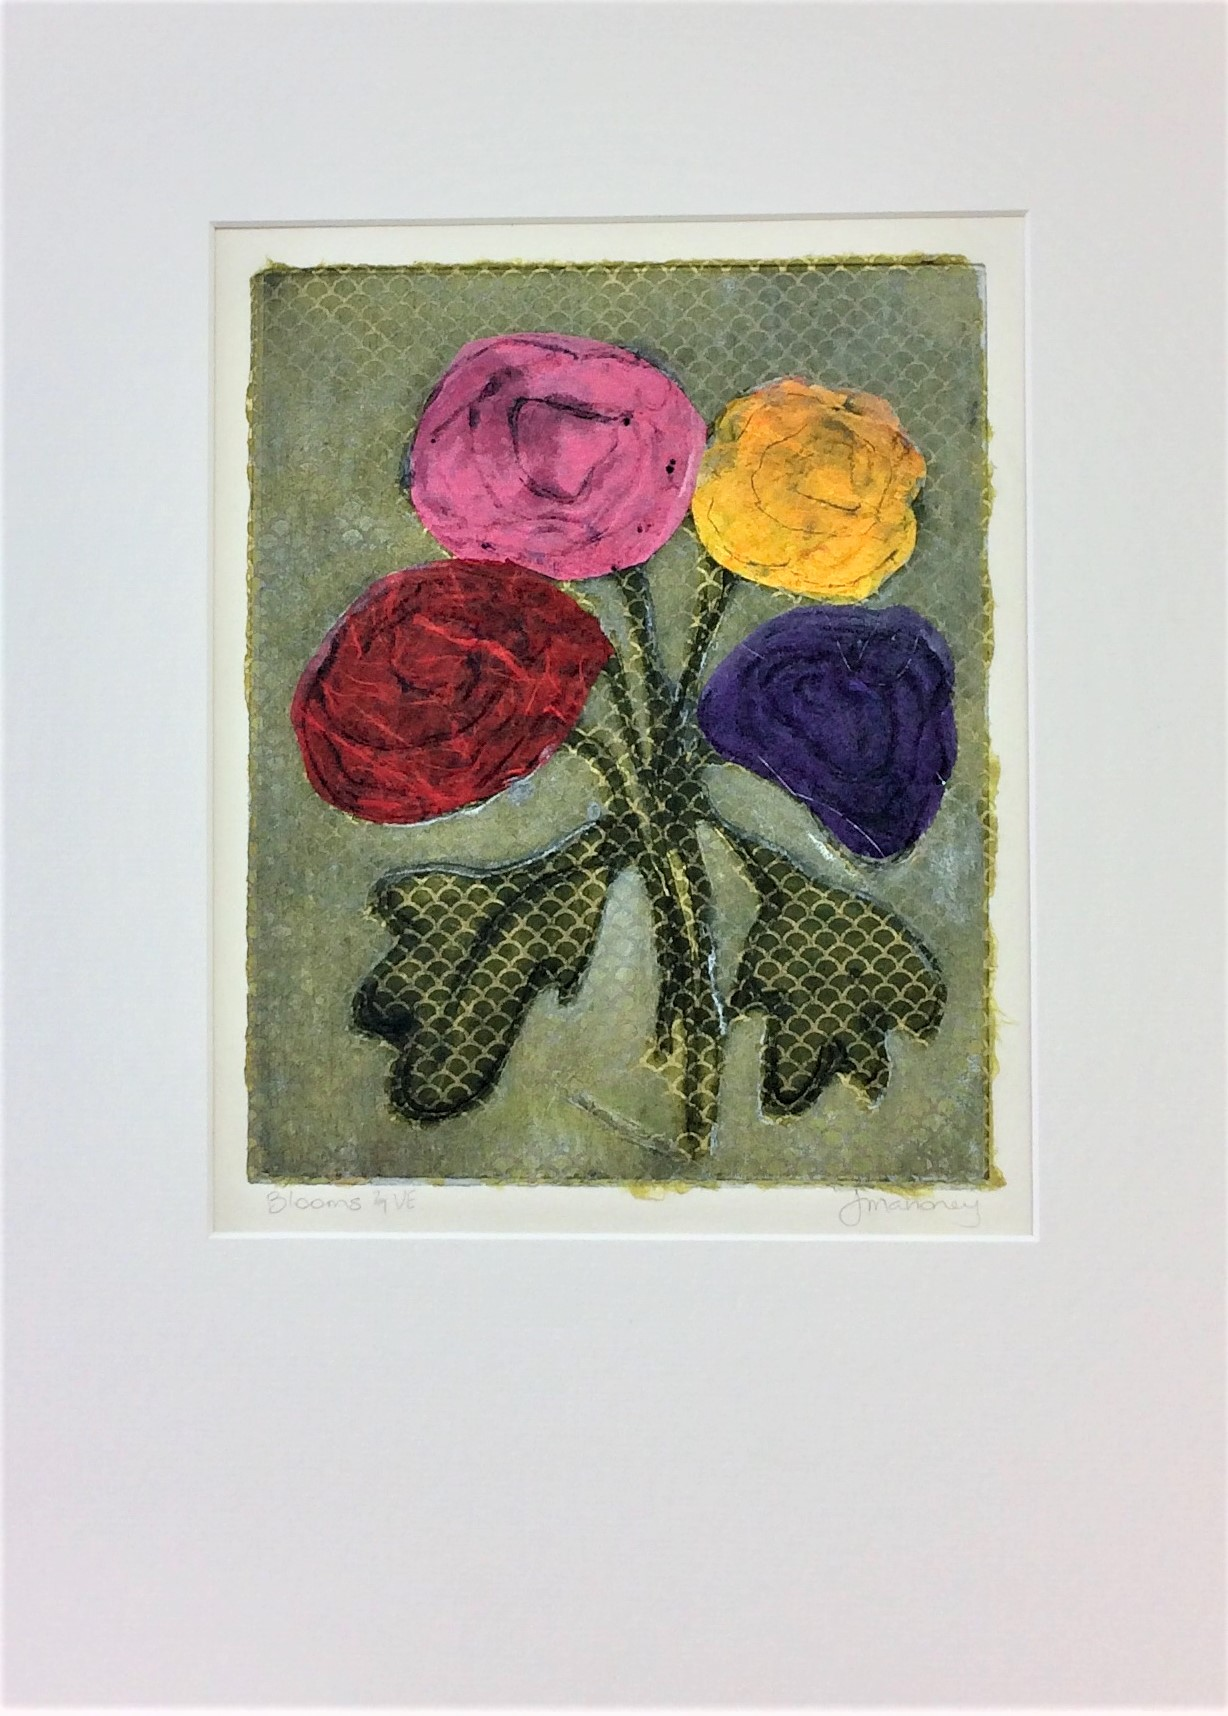 <strong>Blooms 2/7 VE<strong> Collagraph & Chine Colle 430mm H x 330mm W -   $150 SOLD